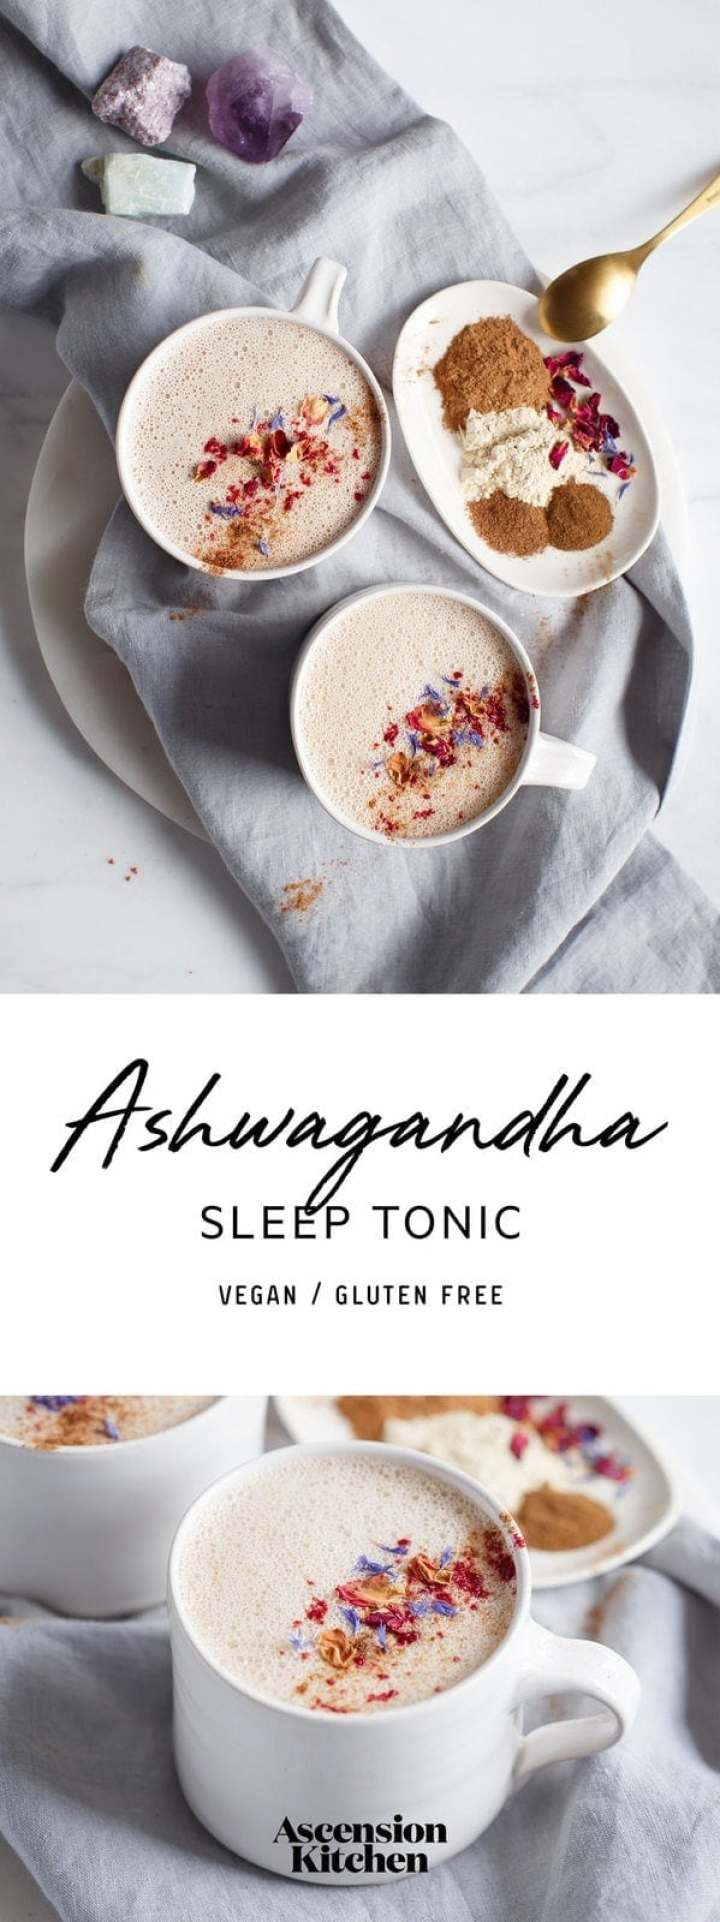 Ashwagandha milk – a tonic to help support sleep and relieve stress and anxiety. #Ashwagandhatonic #Adaptogen #HerbalSleepTonic #AshwagandaMilk #Ashwagandhadrink #Ayurveda #AscensionKitchen // Pin to your own inspiration board! //